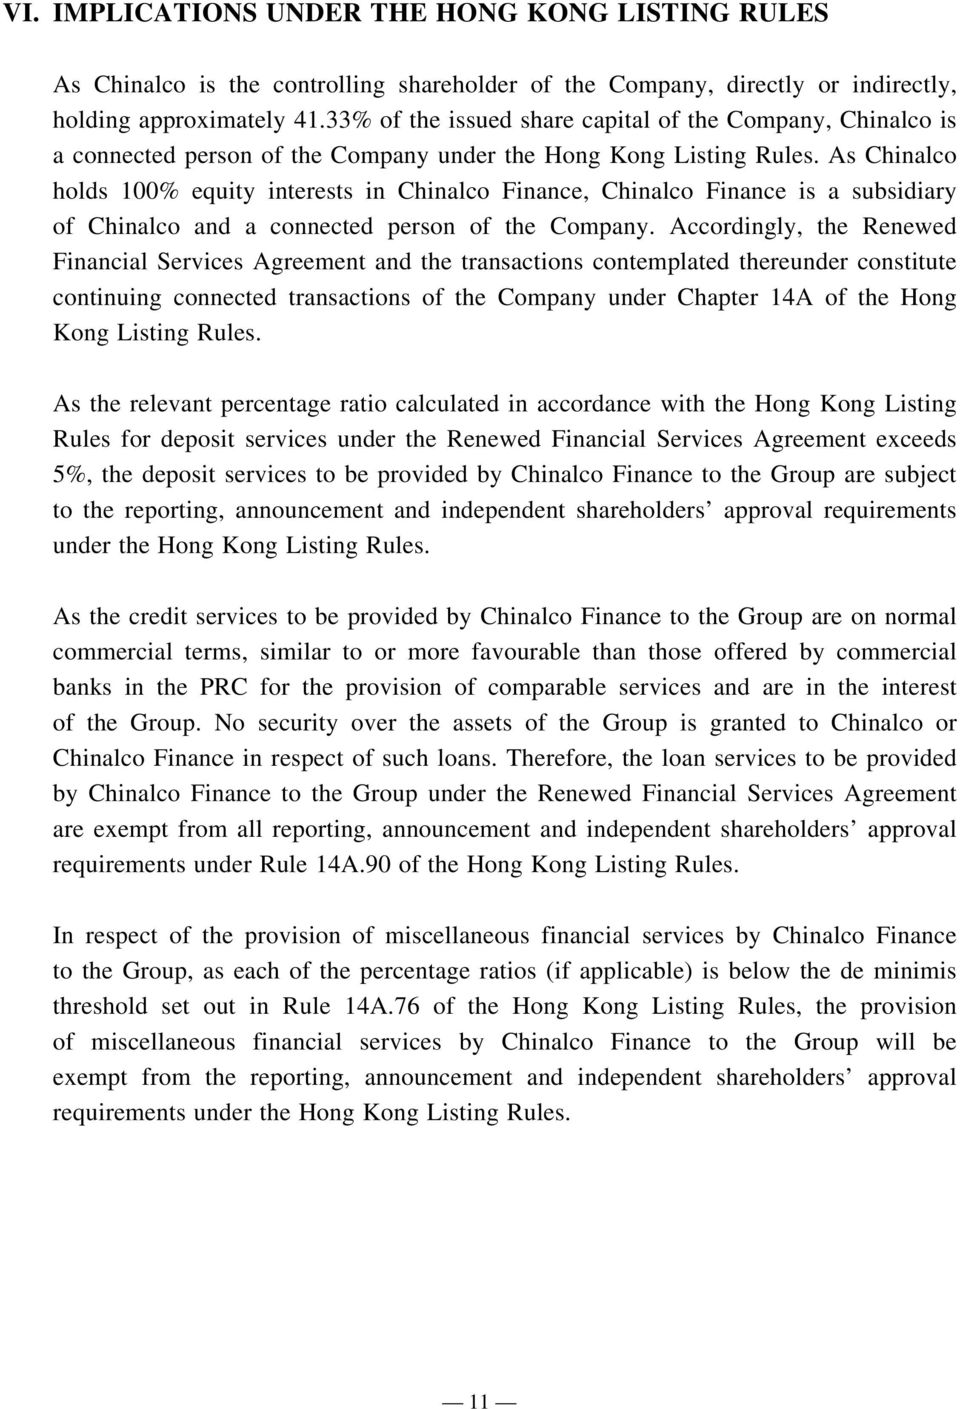 As Chinalco holds 100% equity interests in Chinalco Finance, Chinalco Finance is a subsidiary of Chinalco and a connected person of the Company.